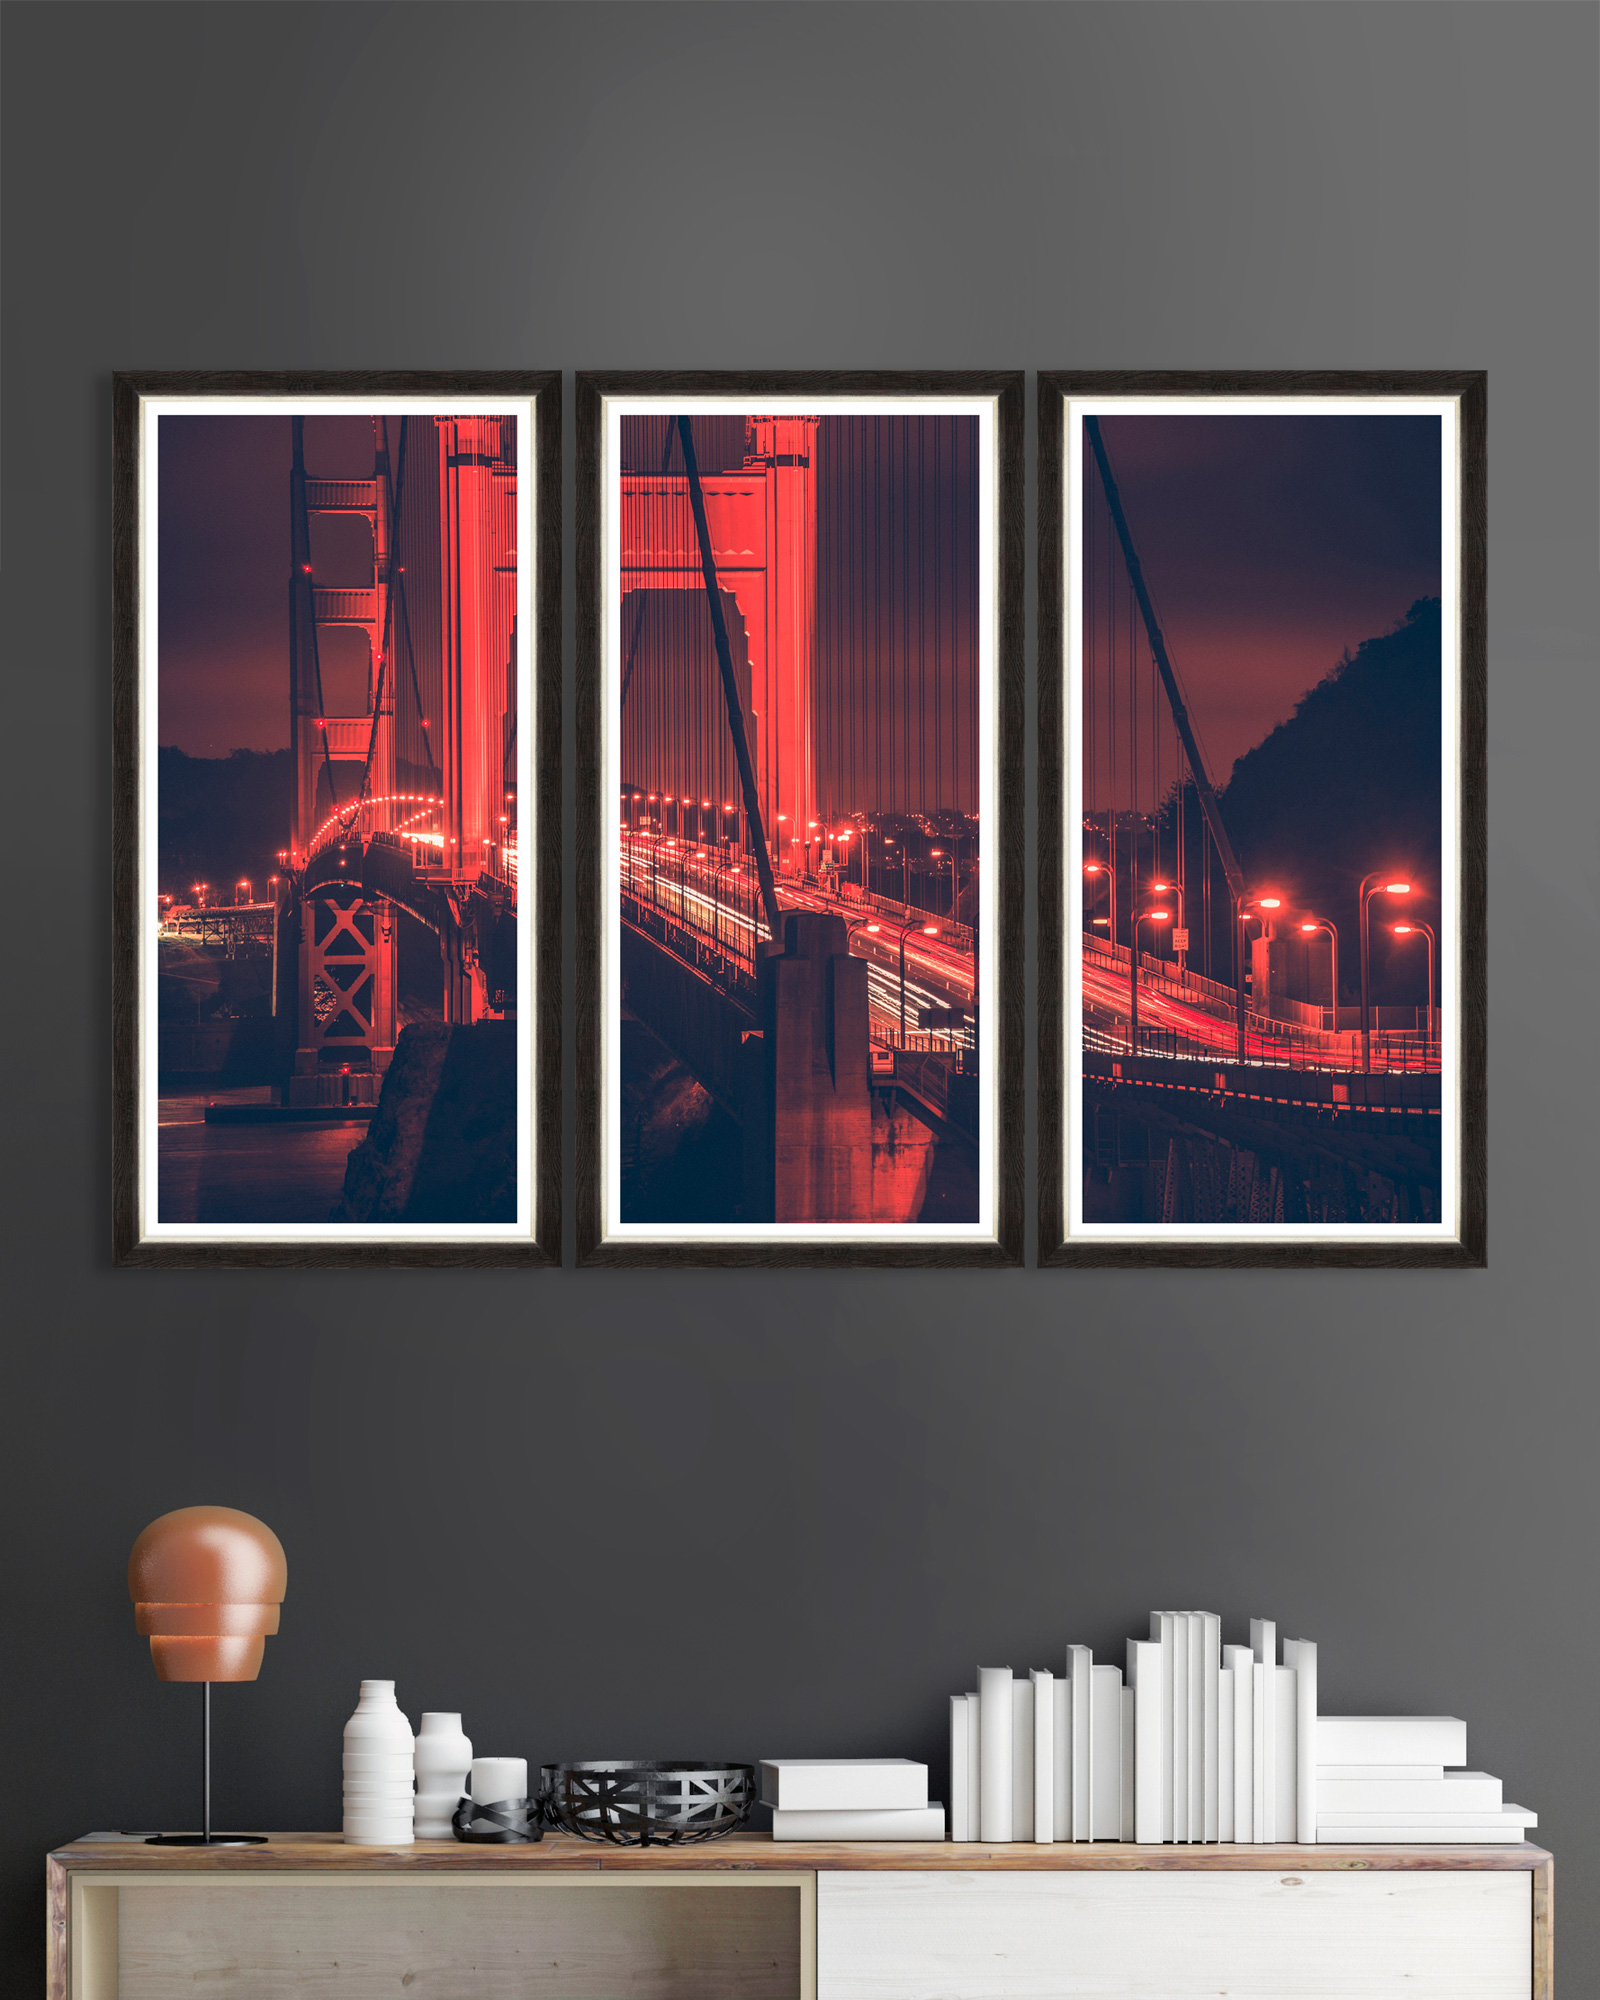 Tablou 3 piese Framed Art Golden Gate Lights Triptych imagine